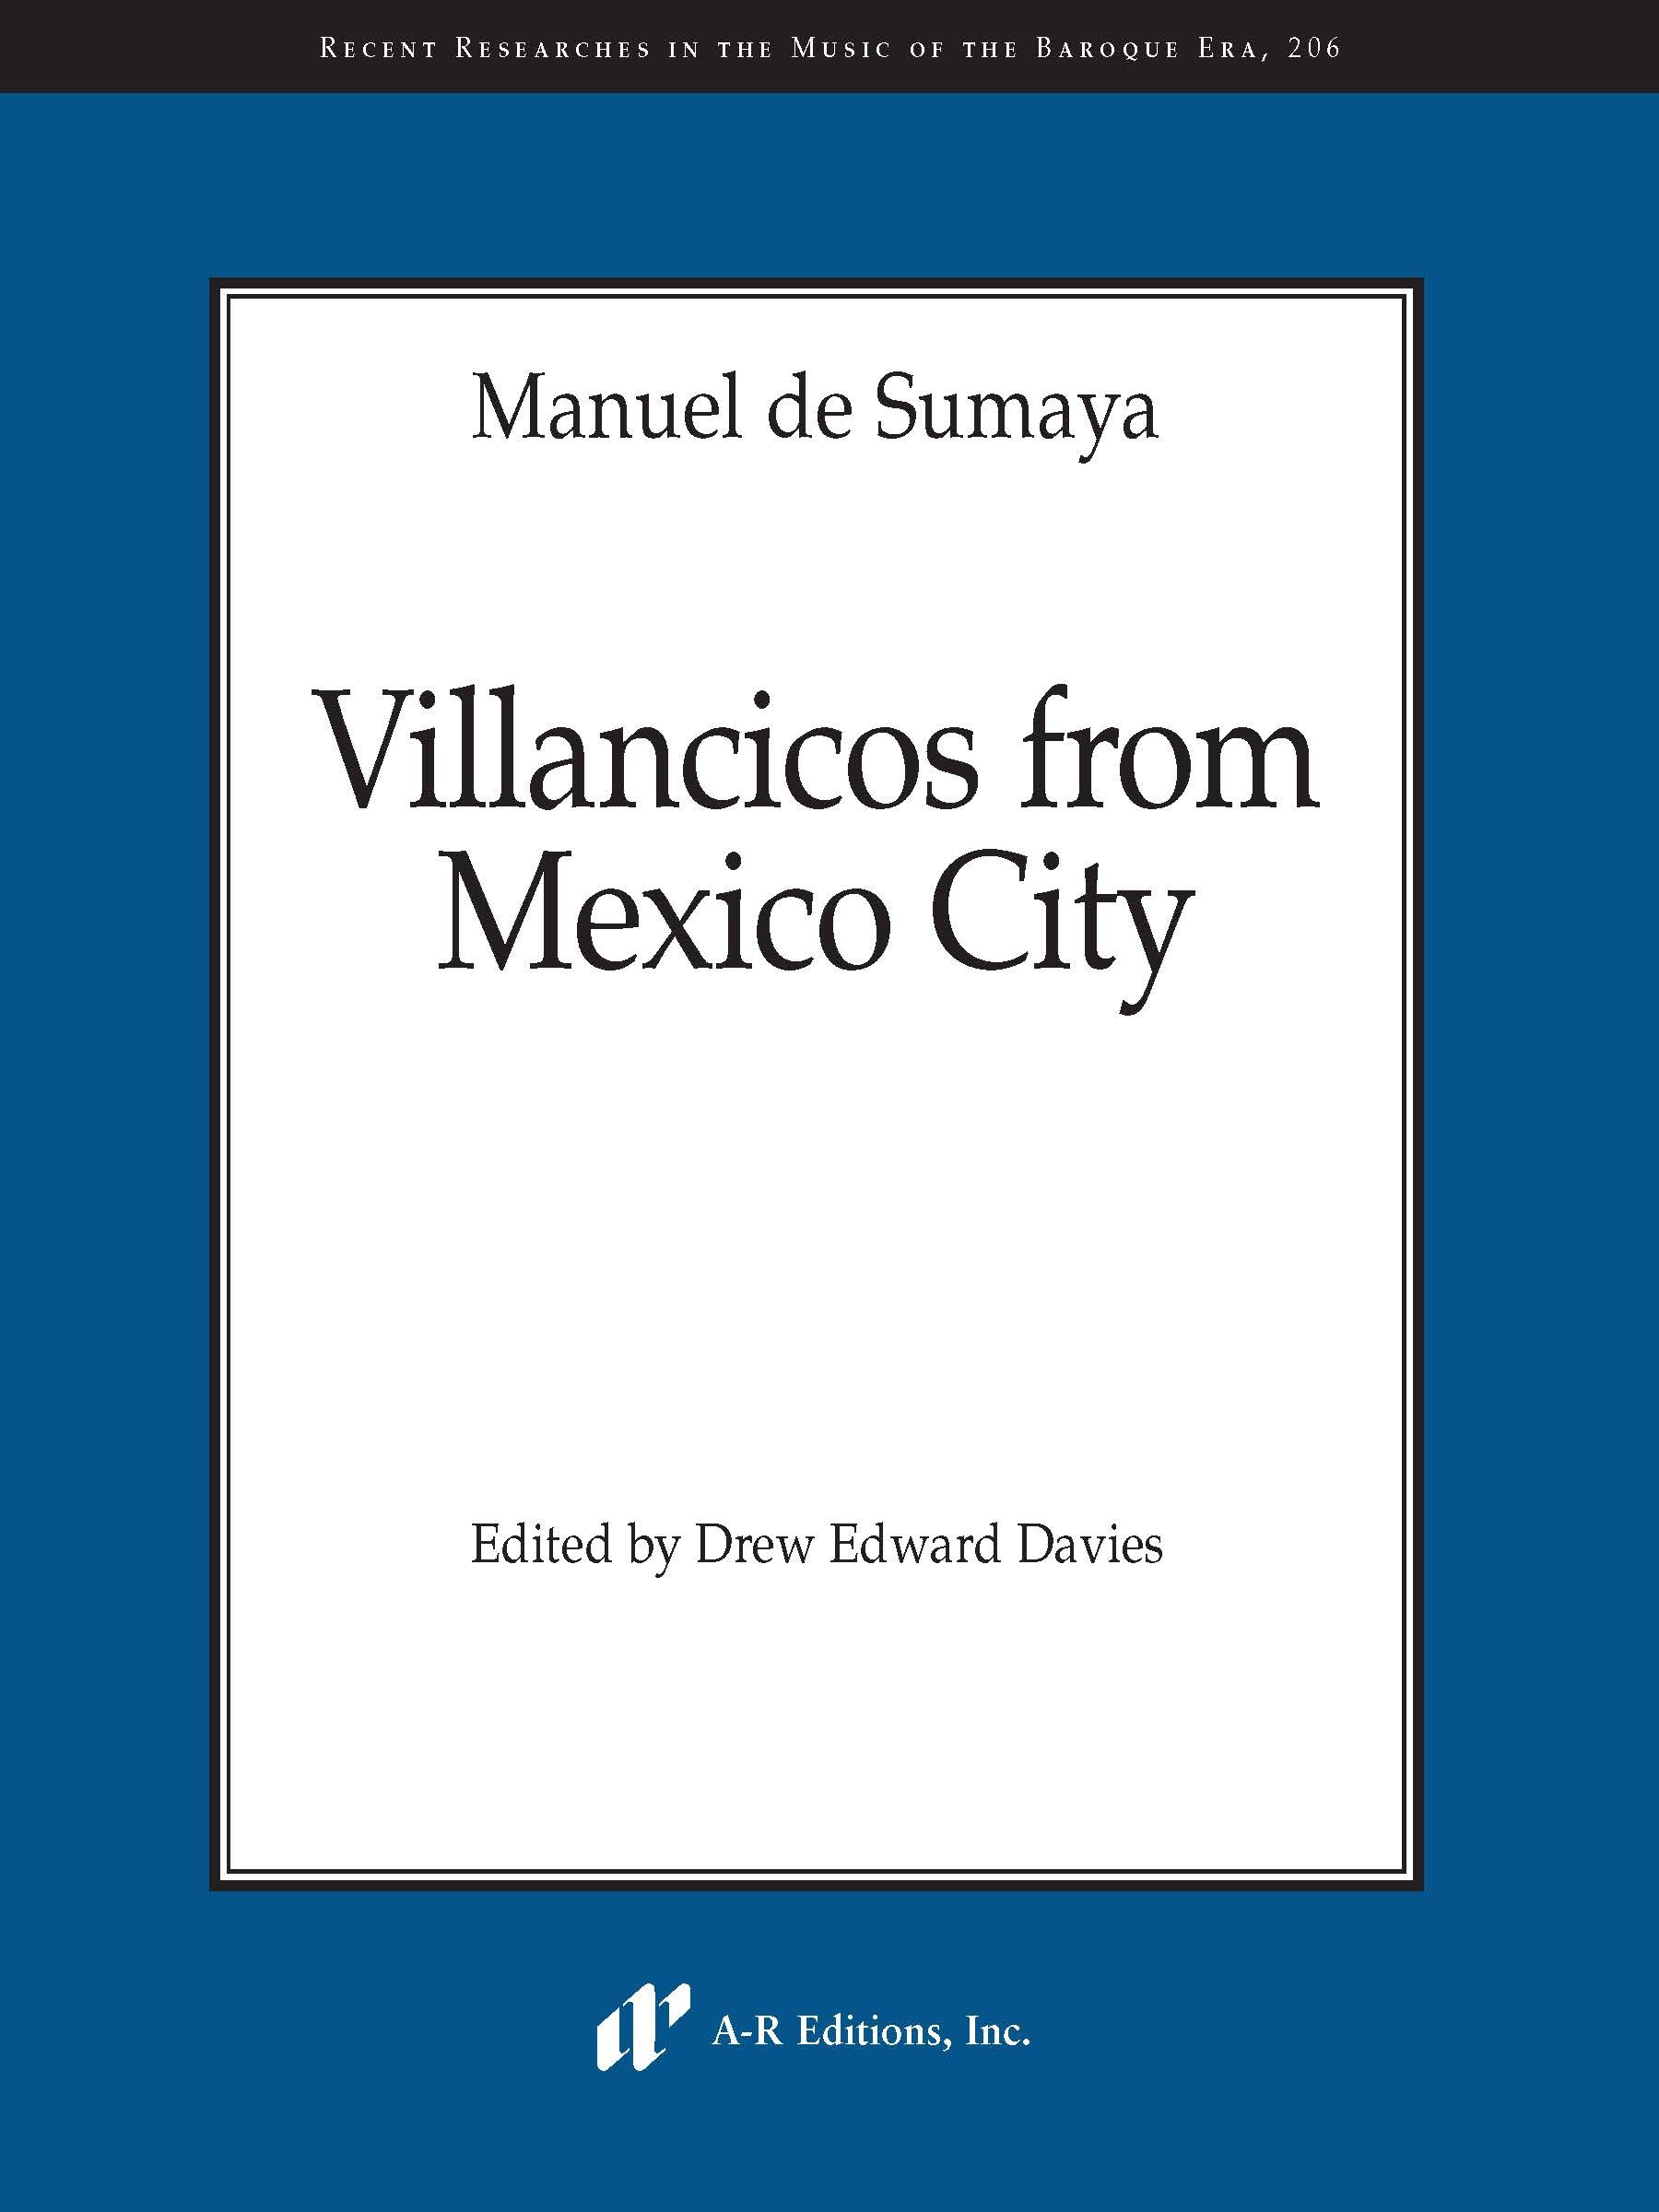 Sumaya: Villancicos from Mexico City